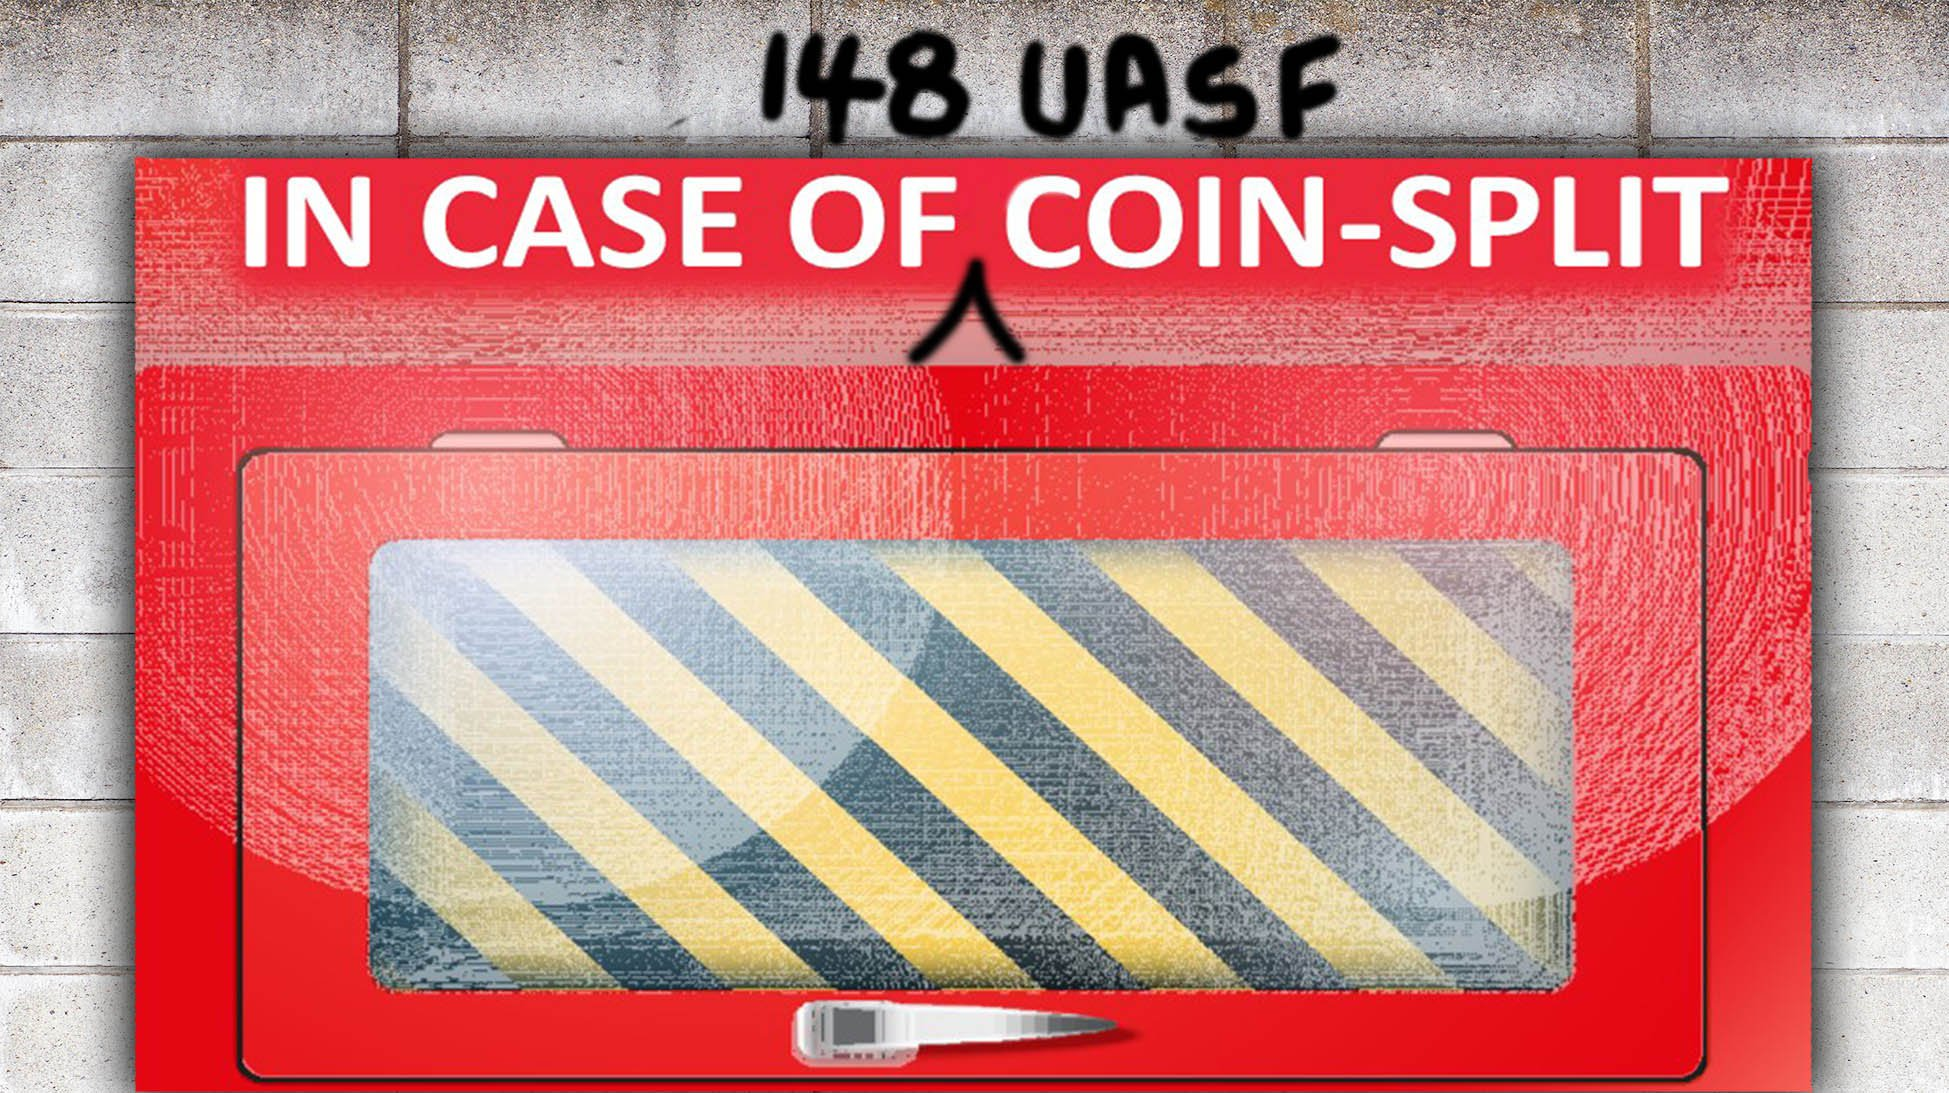 A Bitcoin Beginner's Guide to Surviving the BIP 148 UASF (updated)